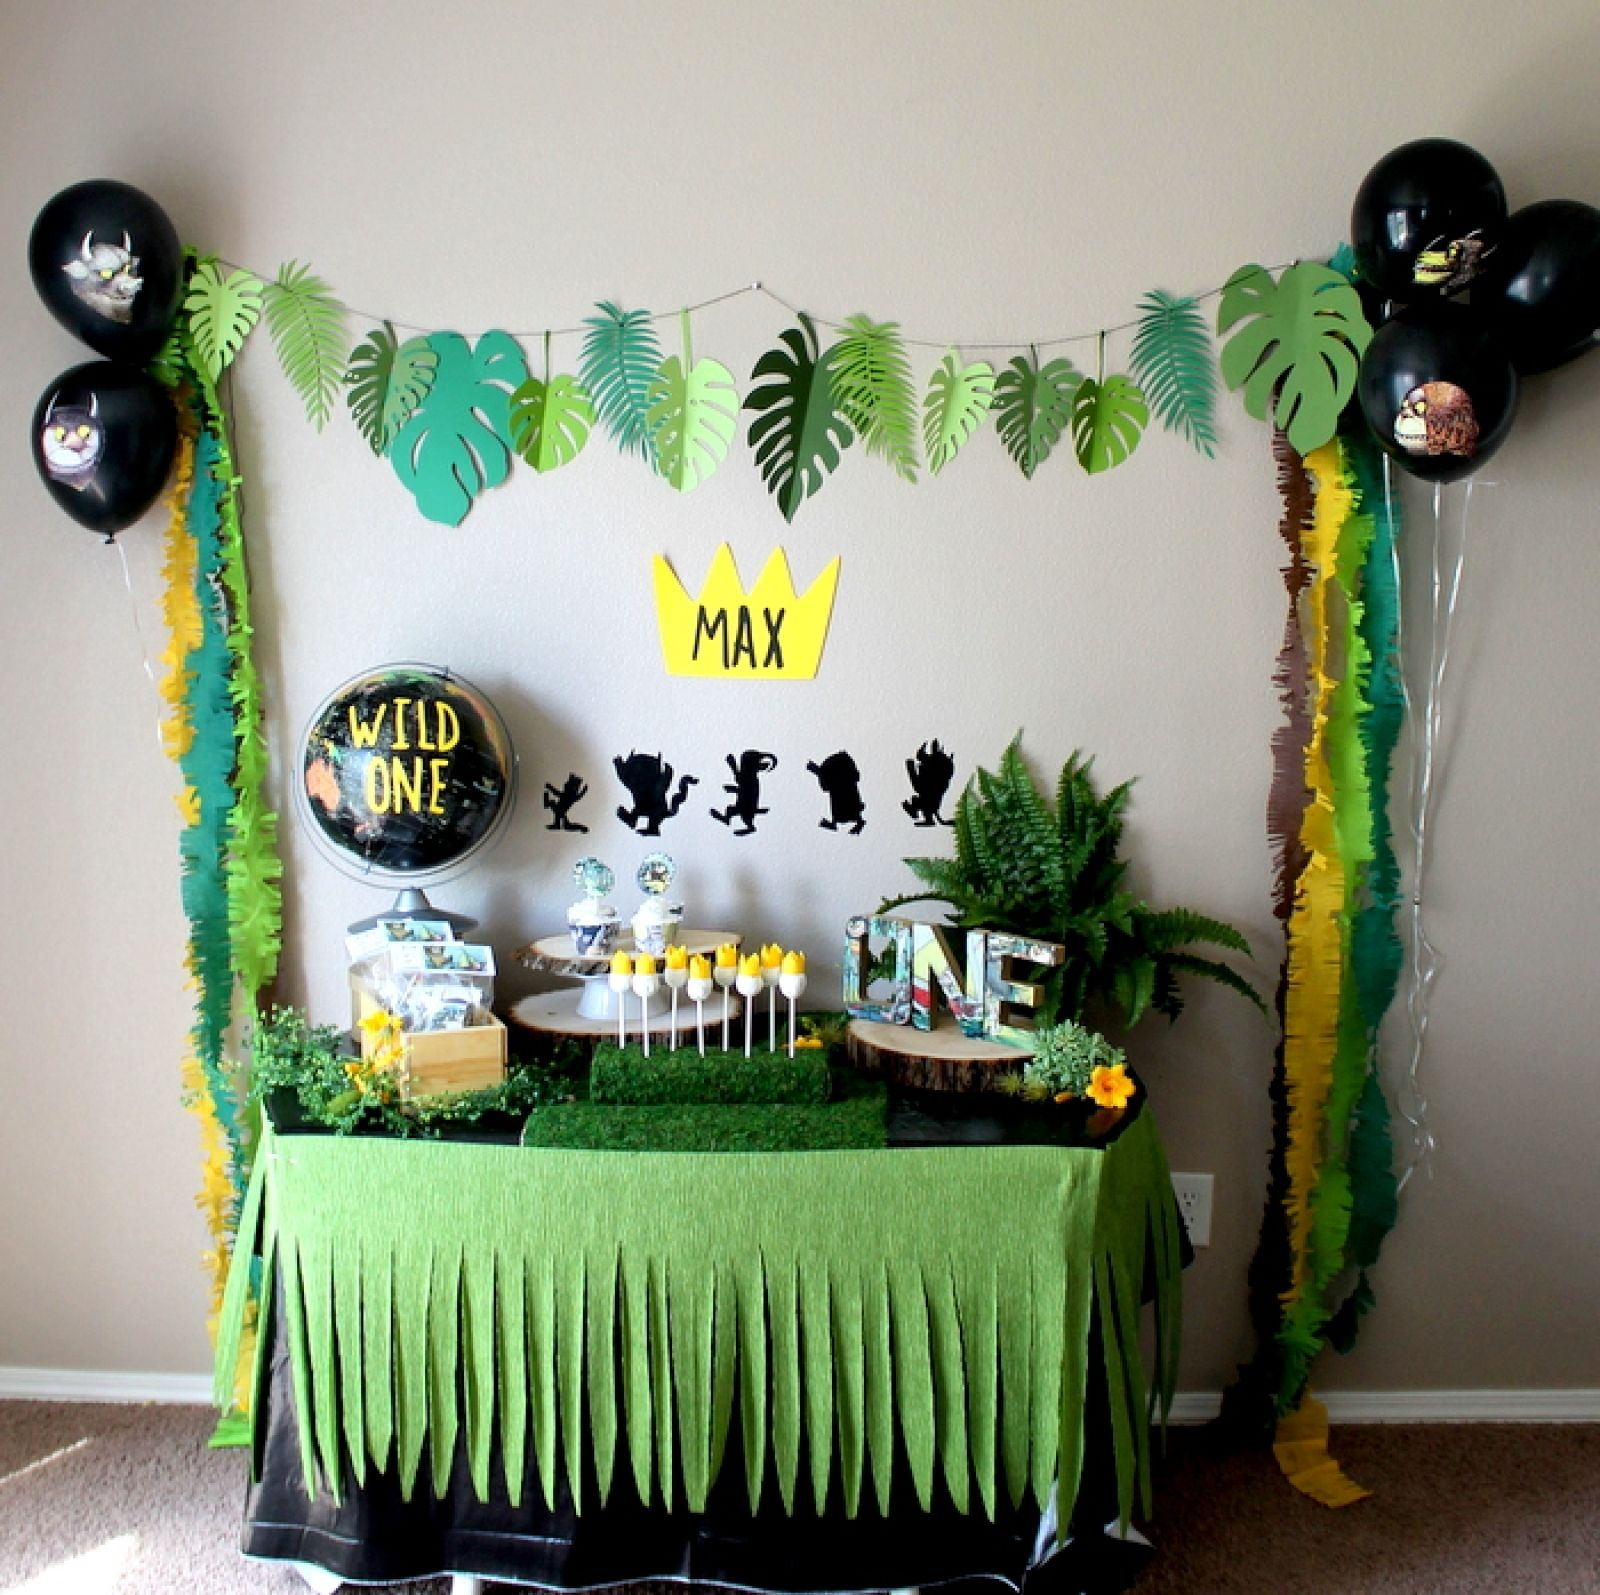 This is a listing for a where the wild things are party